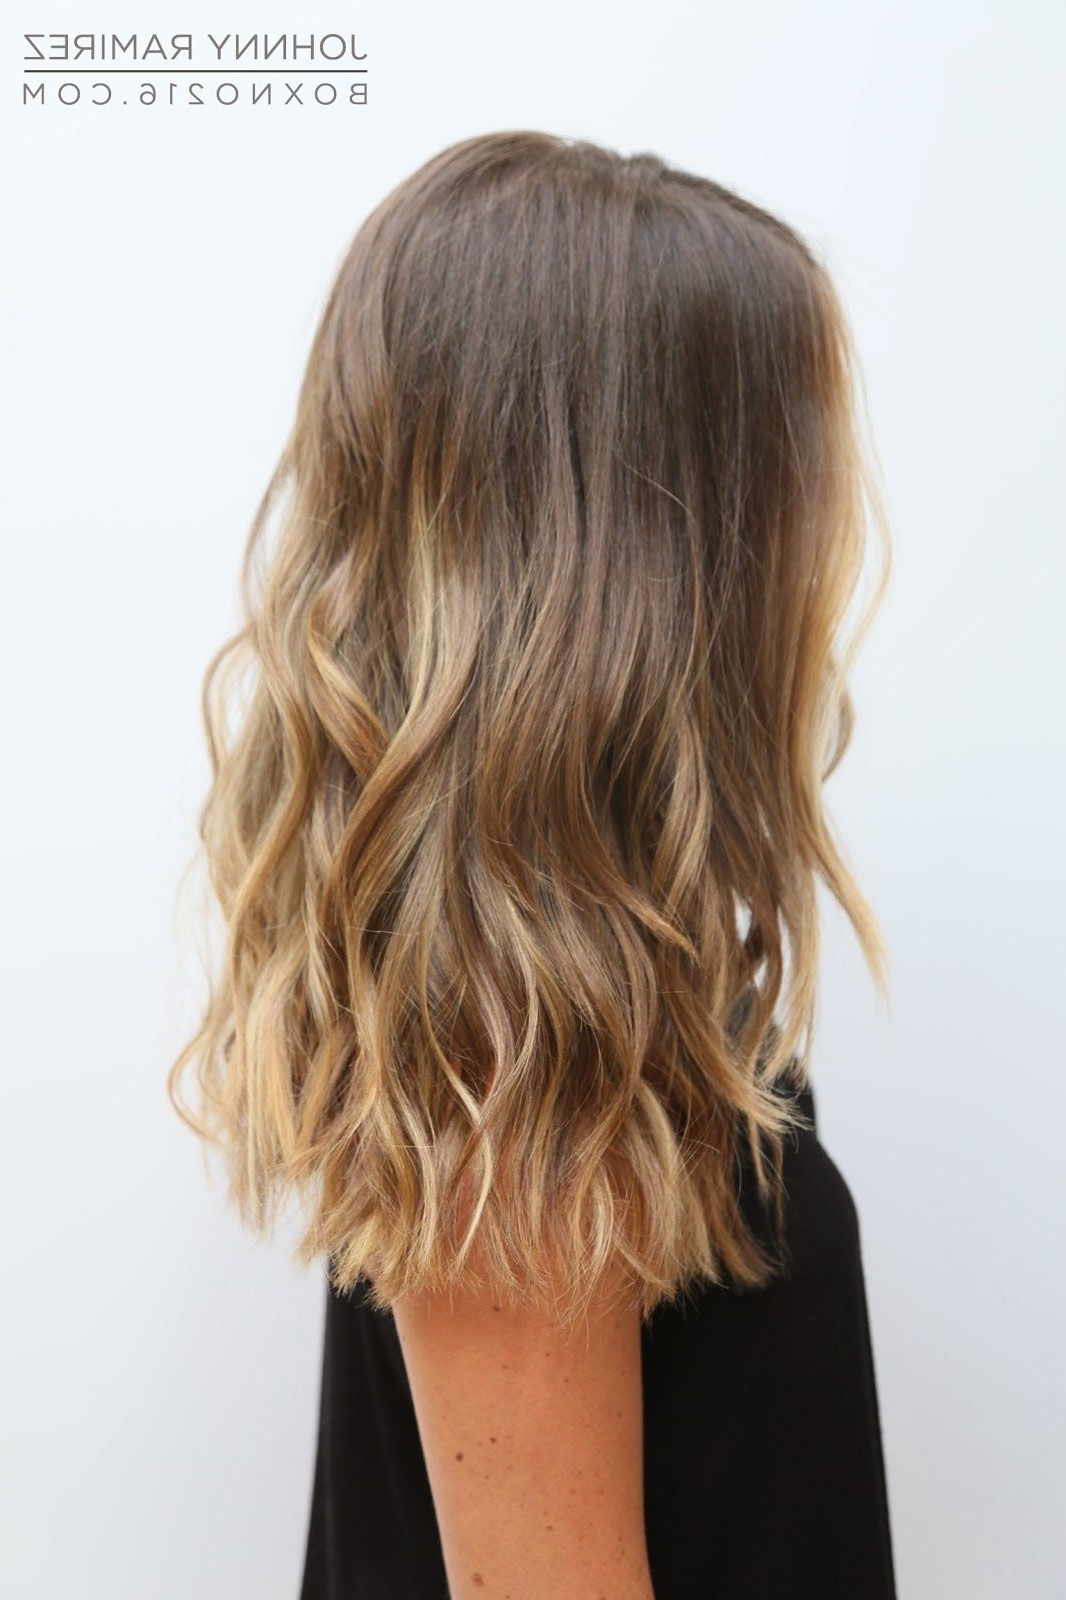 Tran Salon With Regard To Preferred Maple Bronde Hairstyles With Highlights (View 18 of 20)